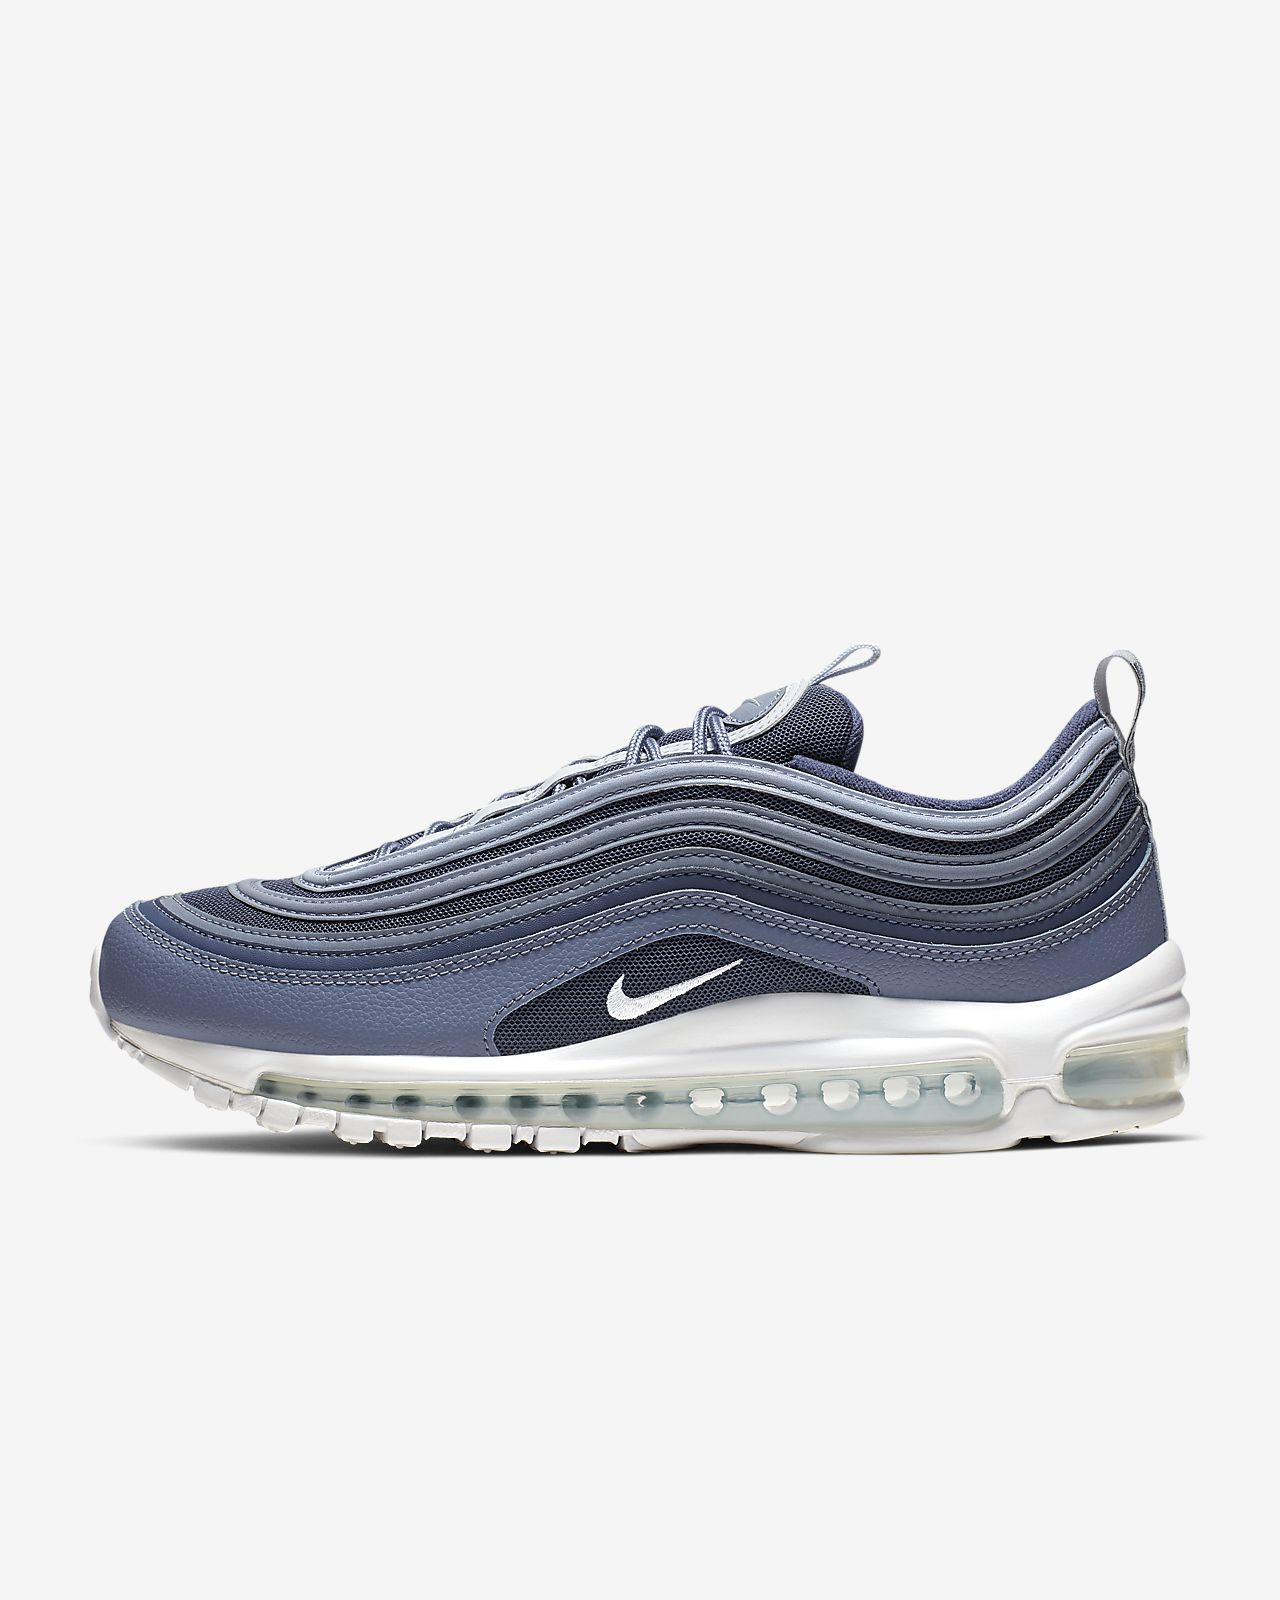 8ee749ad49 Nike Air Max 97 Men's Shoe